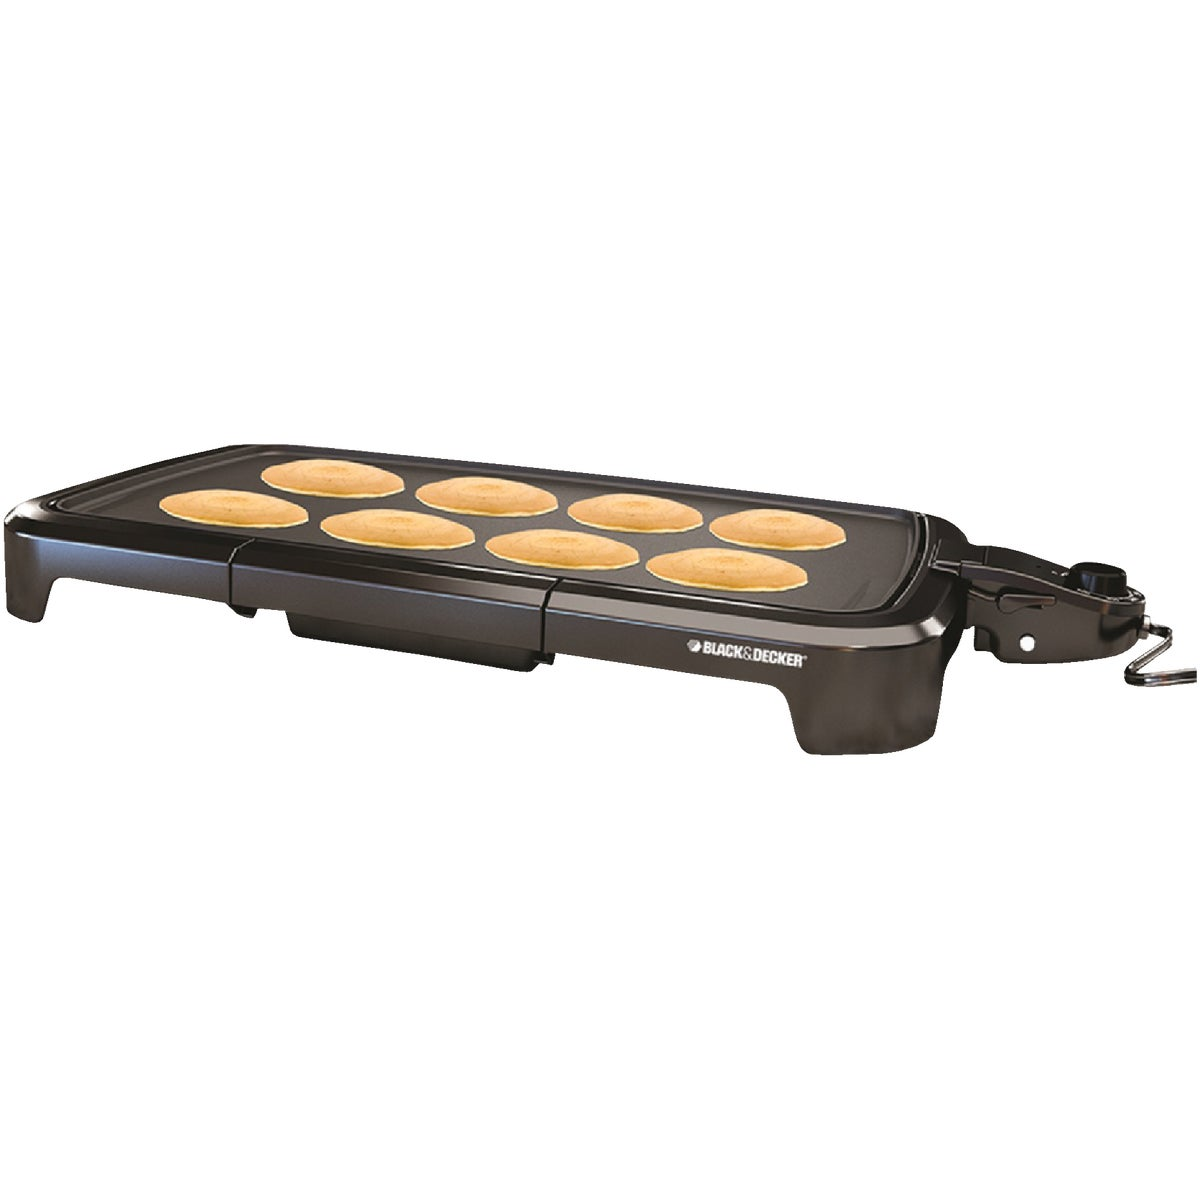 FAMILY SIZE GRIDDLE - GD2011B by Applia      Spectrum